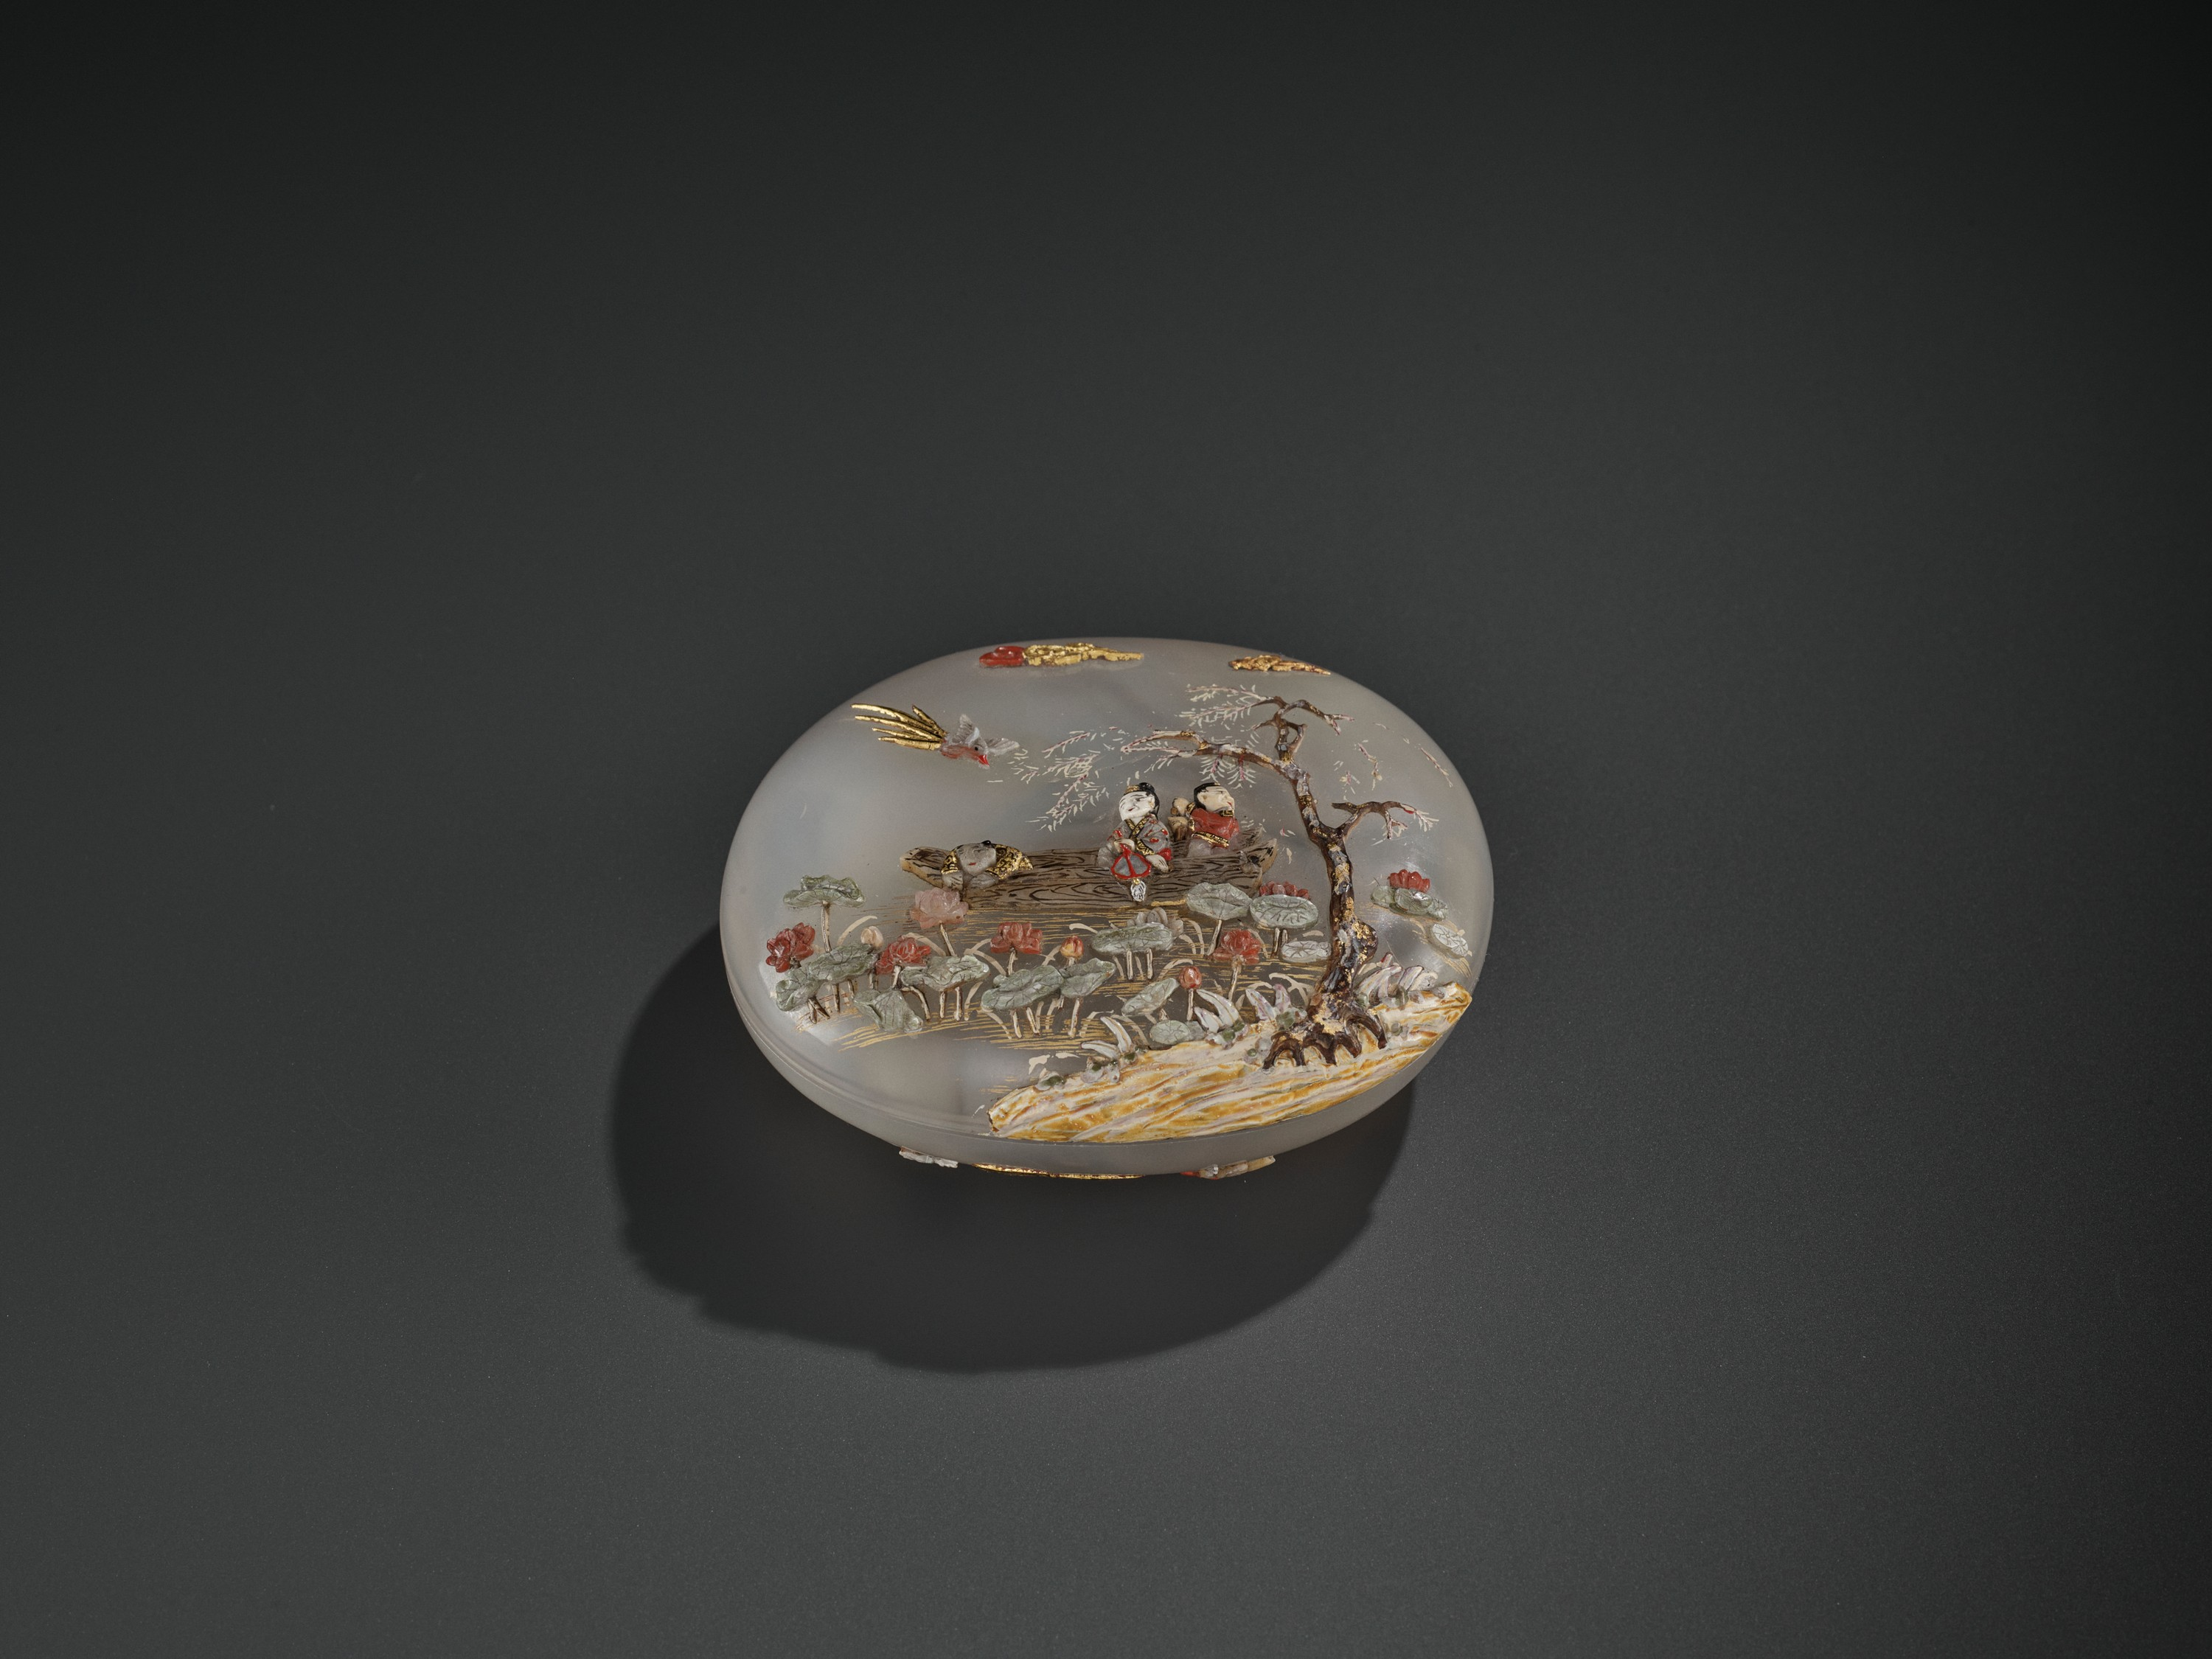 AN EMBELLISHED 'PICKING LOTUS' AGATE BOX, QING DYNASTY - Image 8 of 11